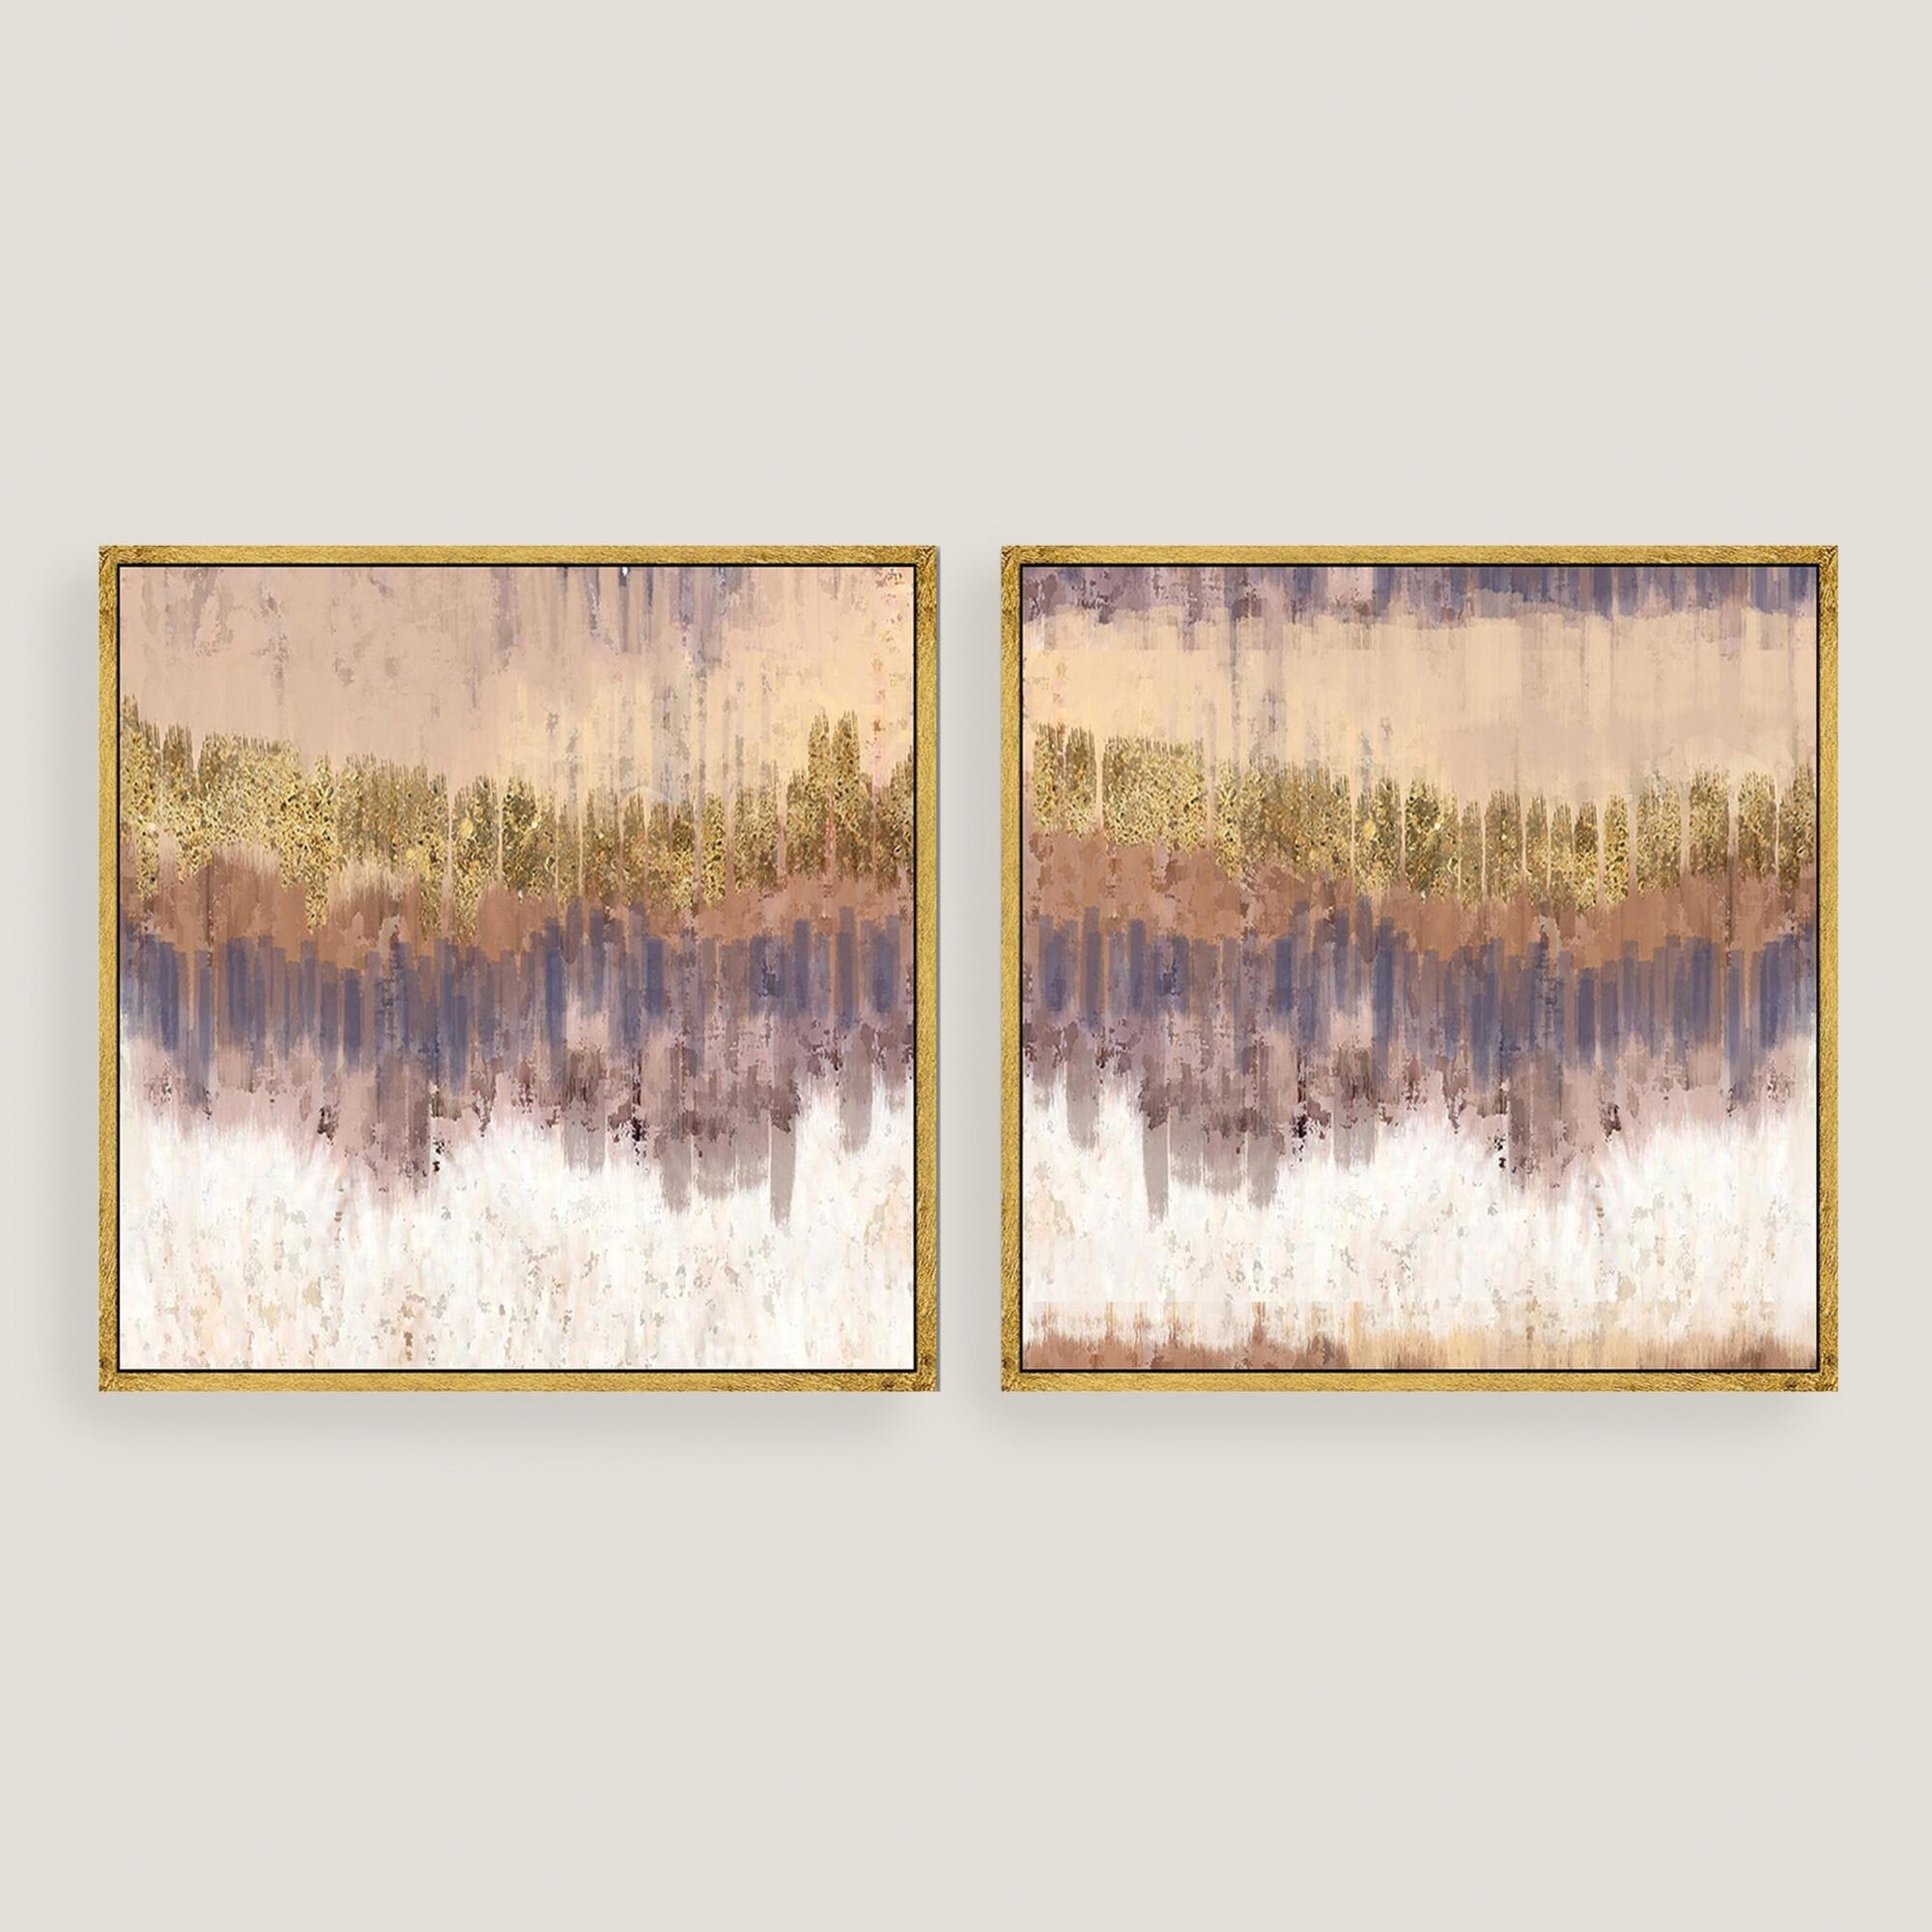 Wall Art Designs: Kirklands Wall Art Golden Field Abstract Canvas Inside Most Recently Released Abstract Leaves Wall Art (View 3 of 20)